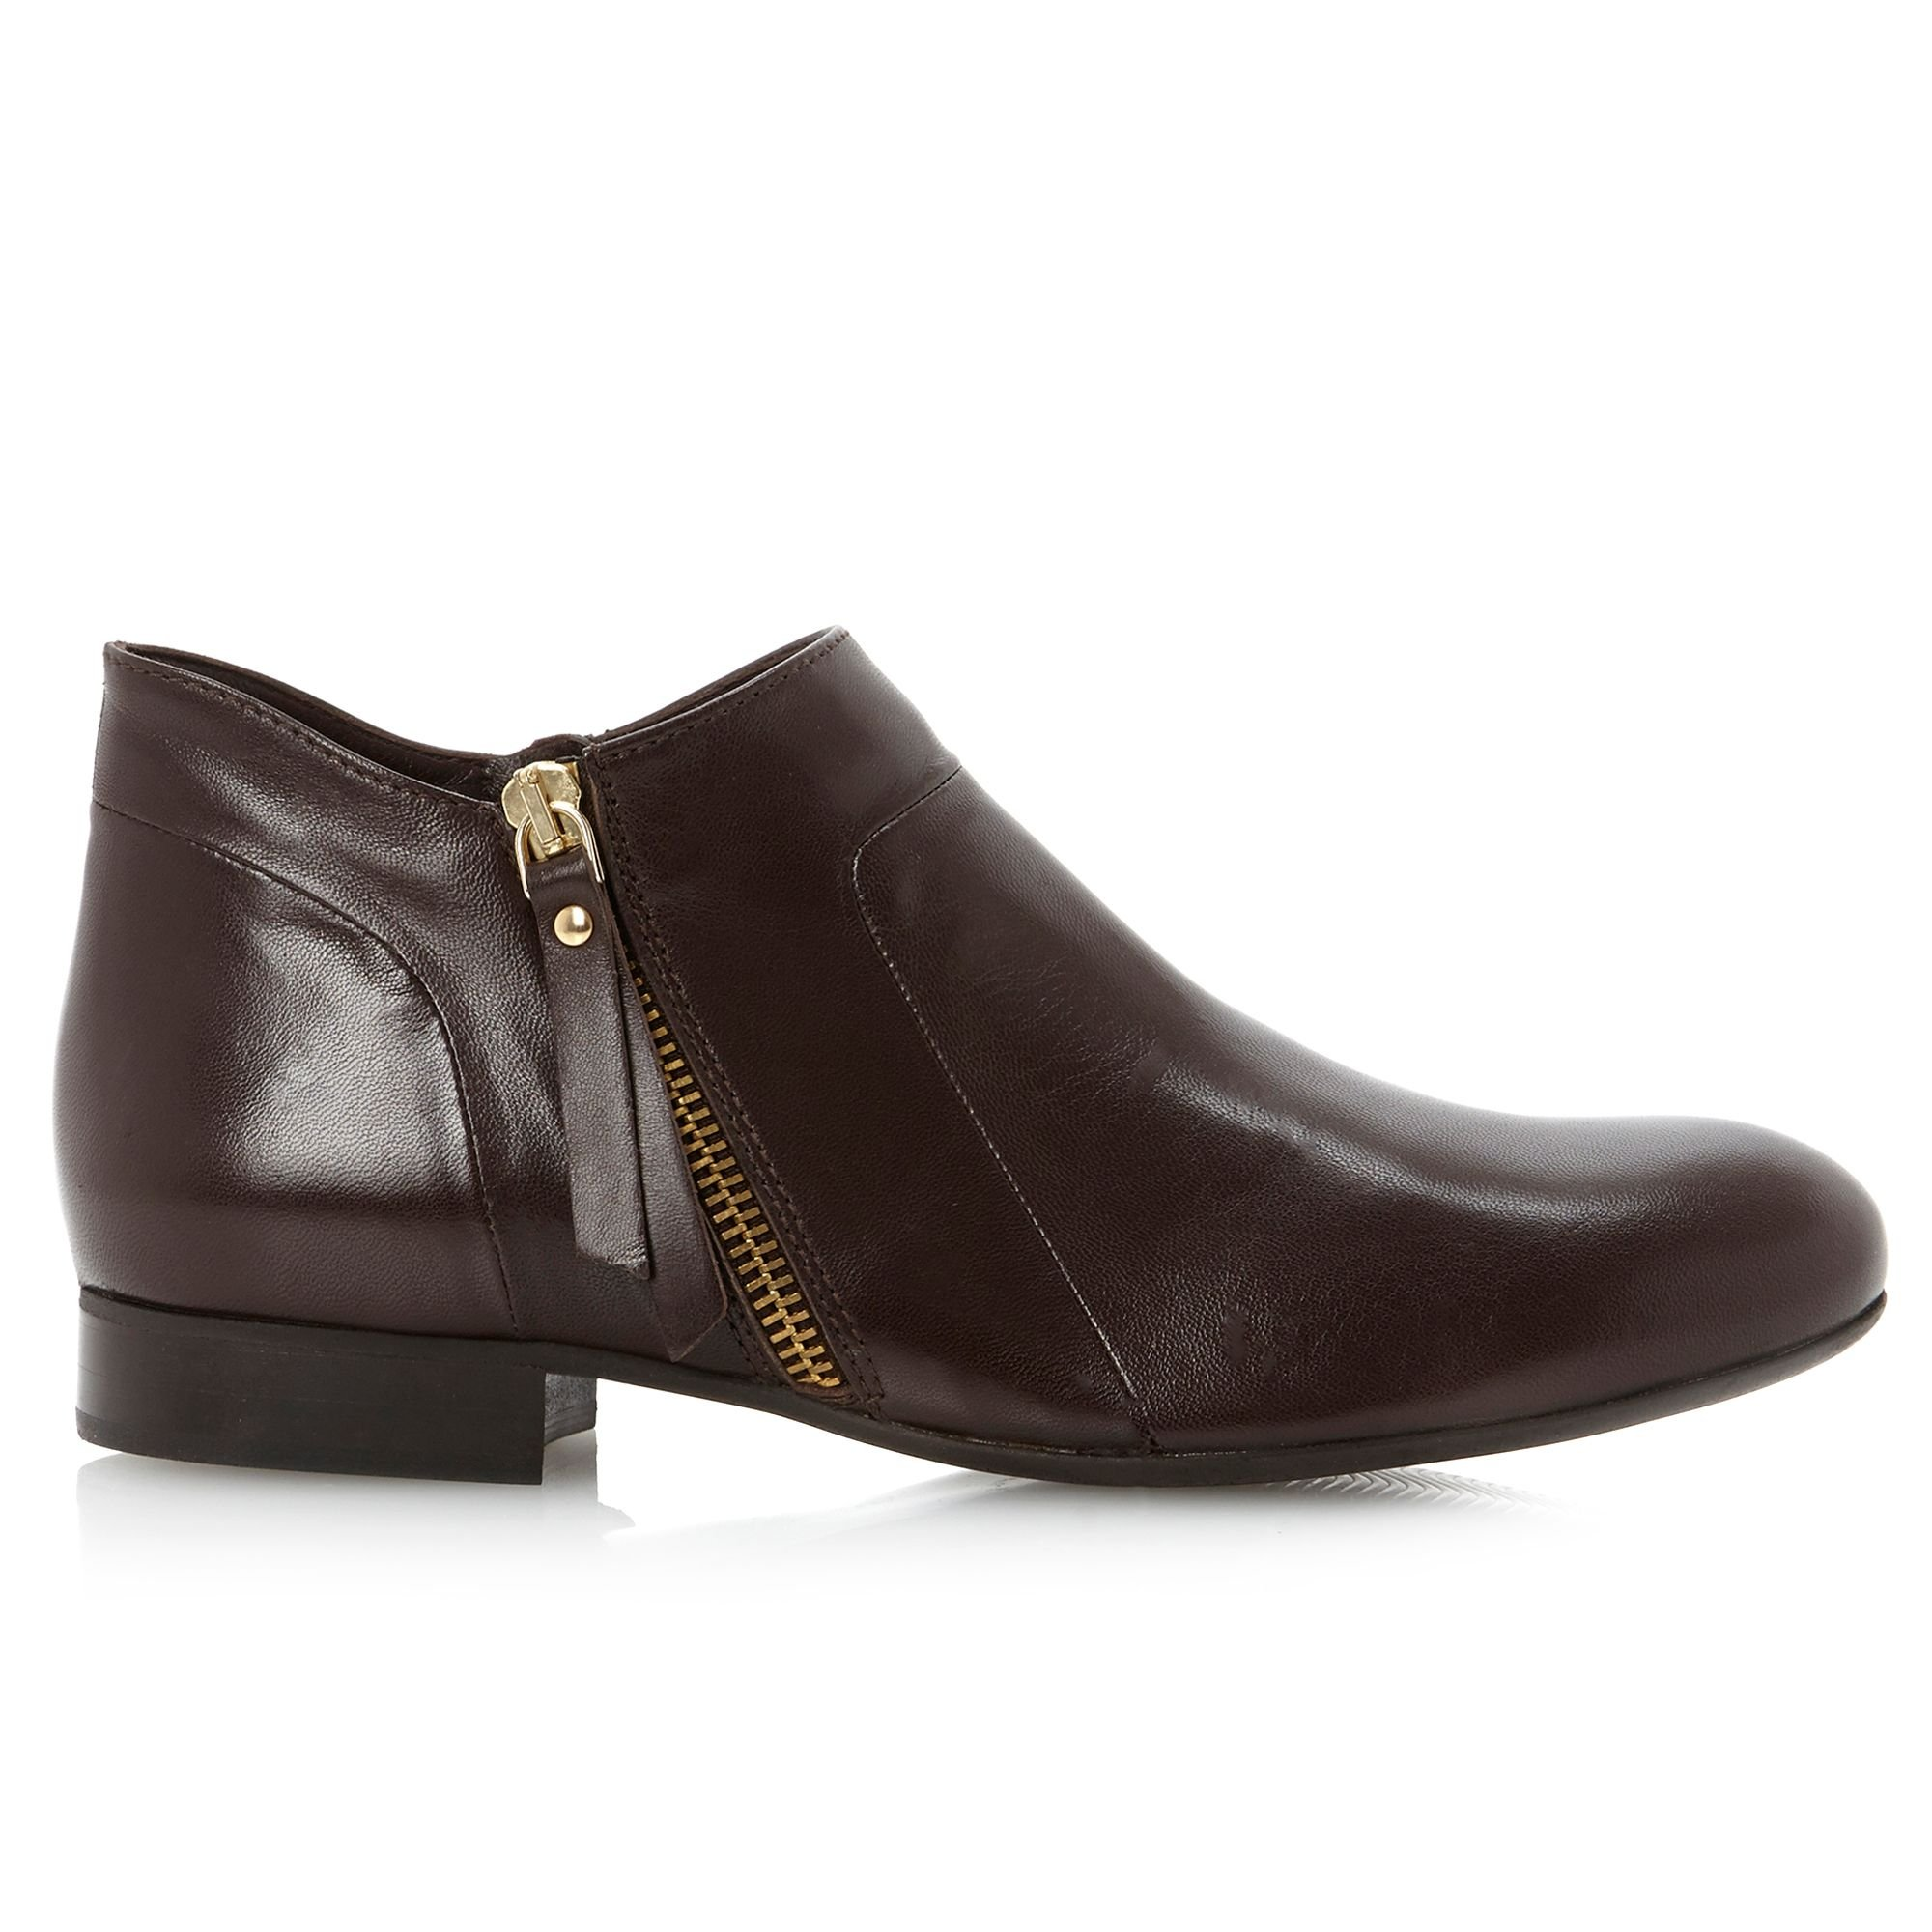 Dune Black Pringle Cropped Shoe Boots in Brown